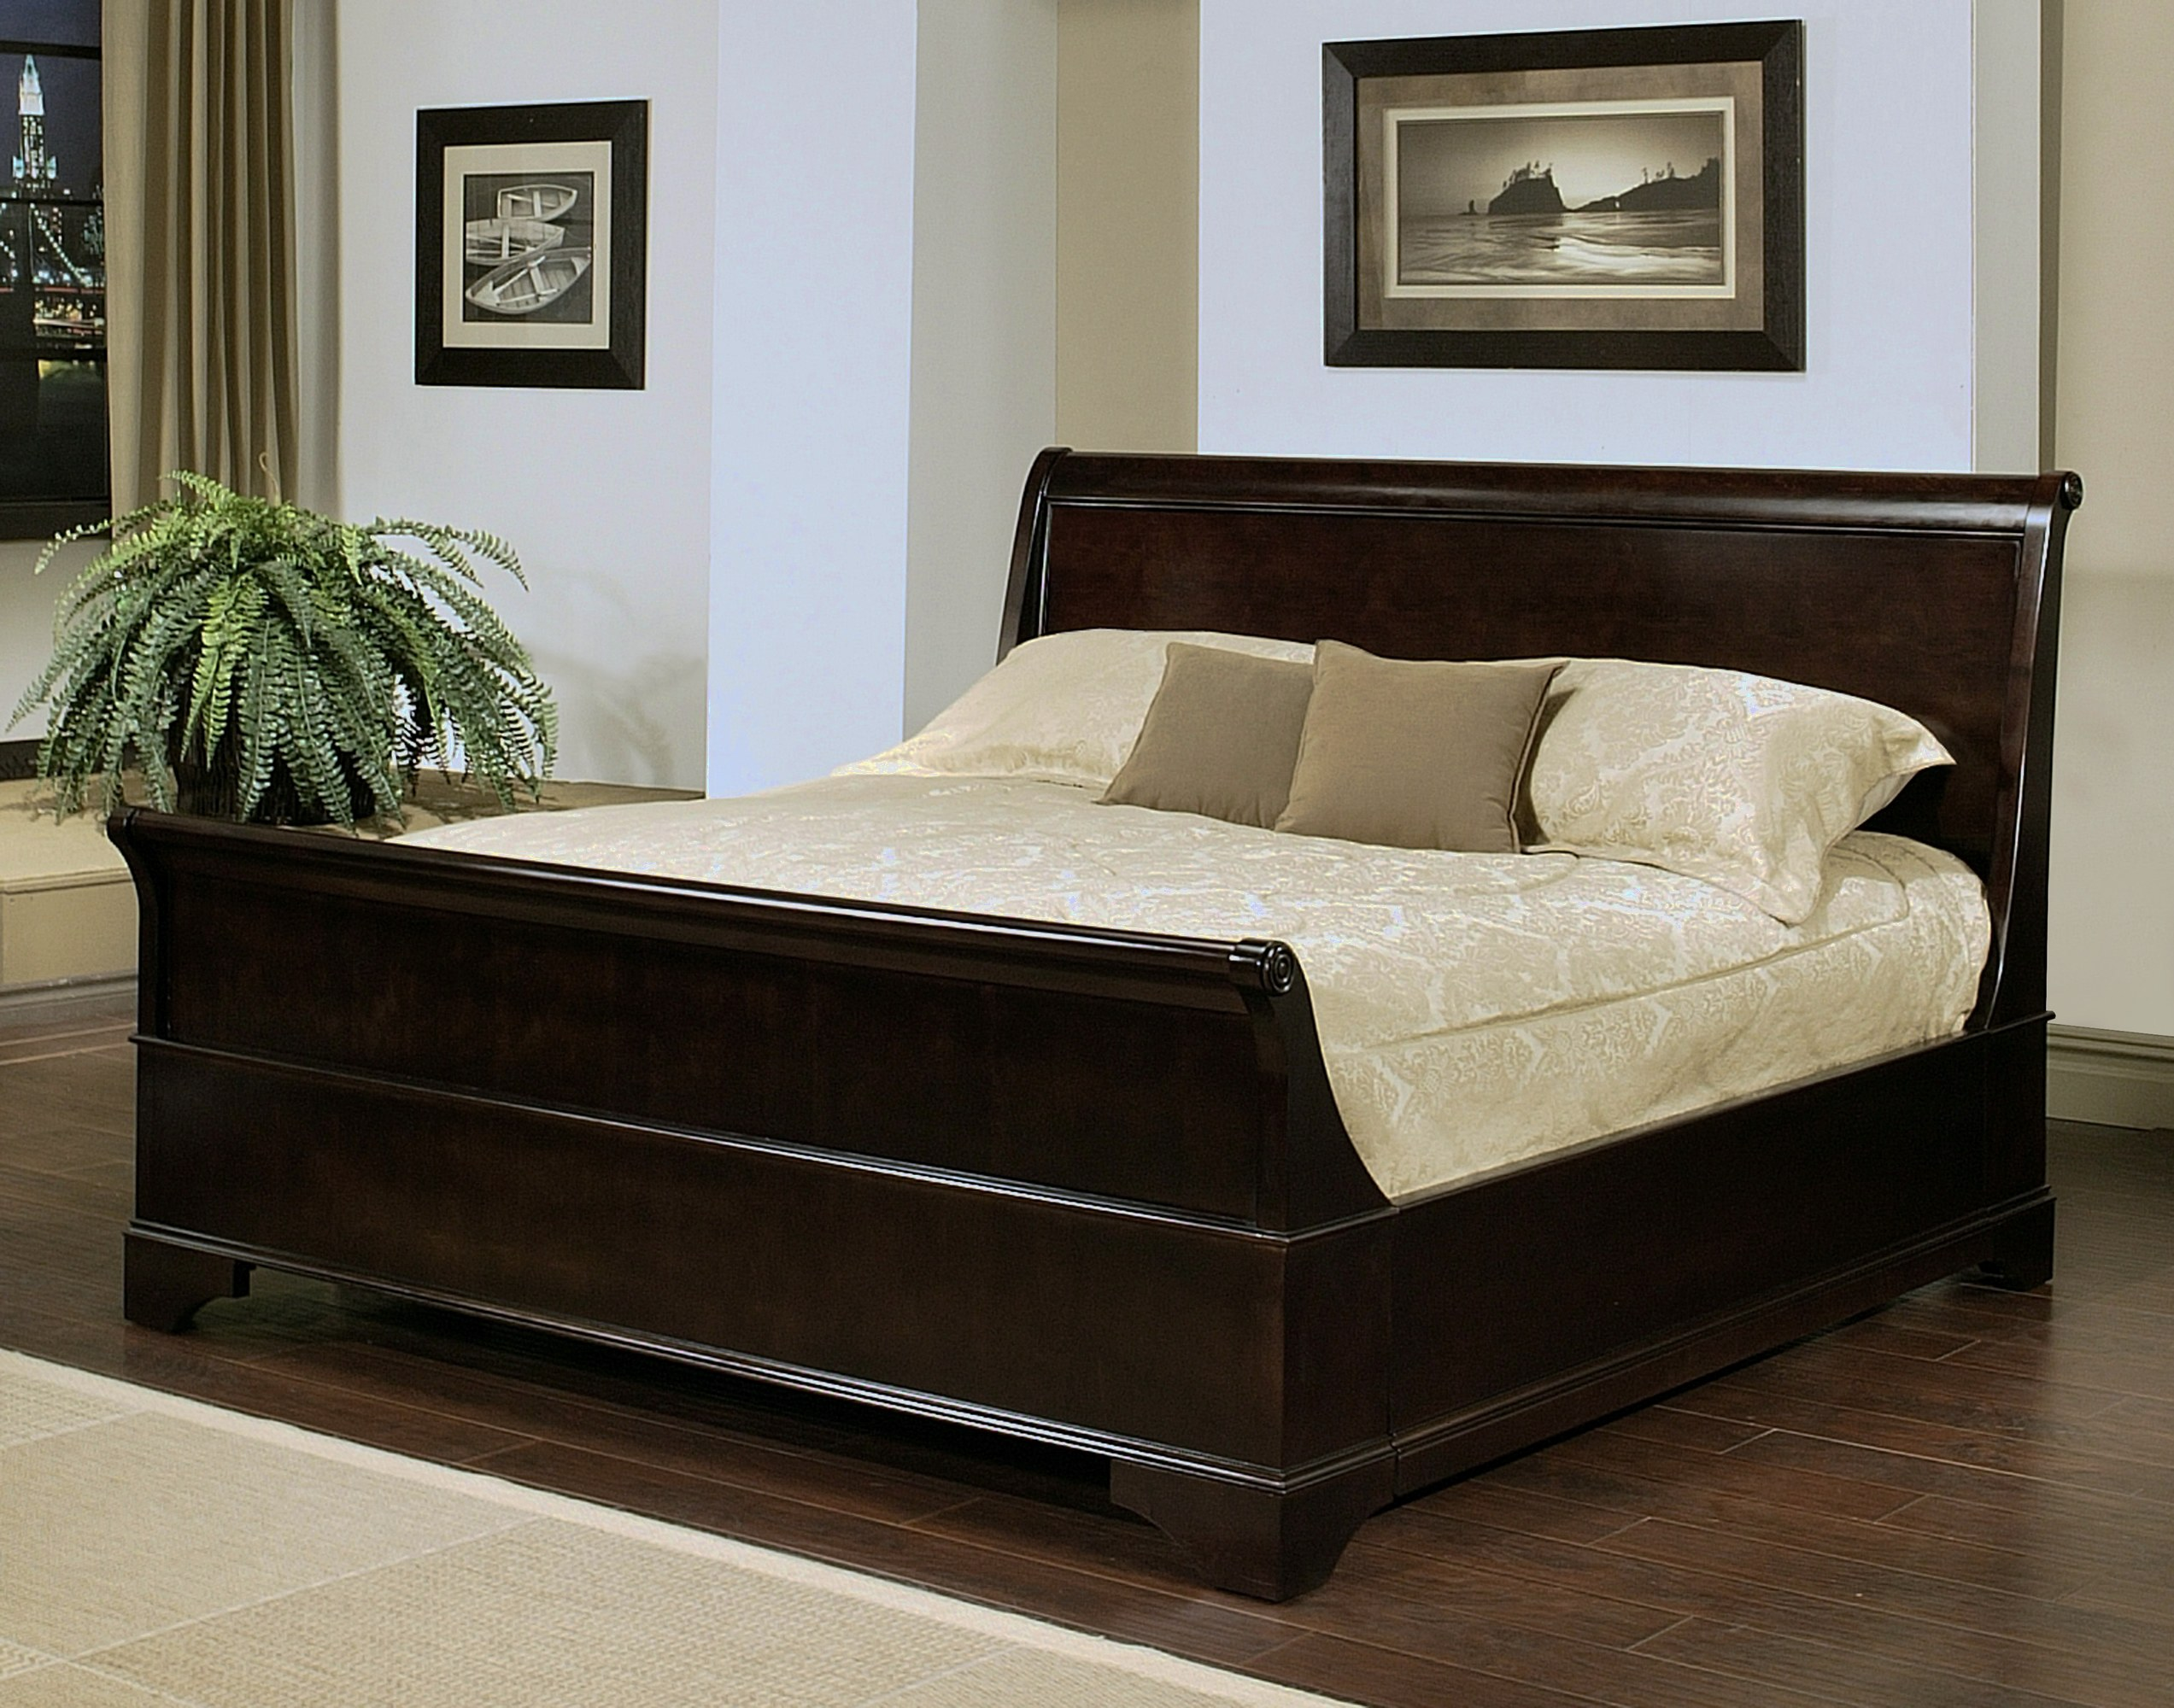 Kingston Sleigh Bed By Abbyson Living HM 5050 0020